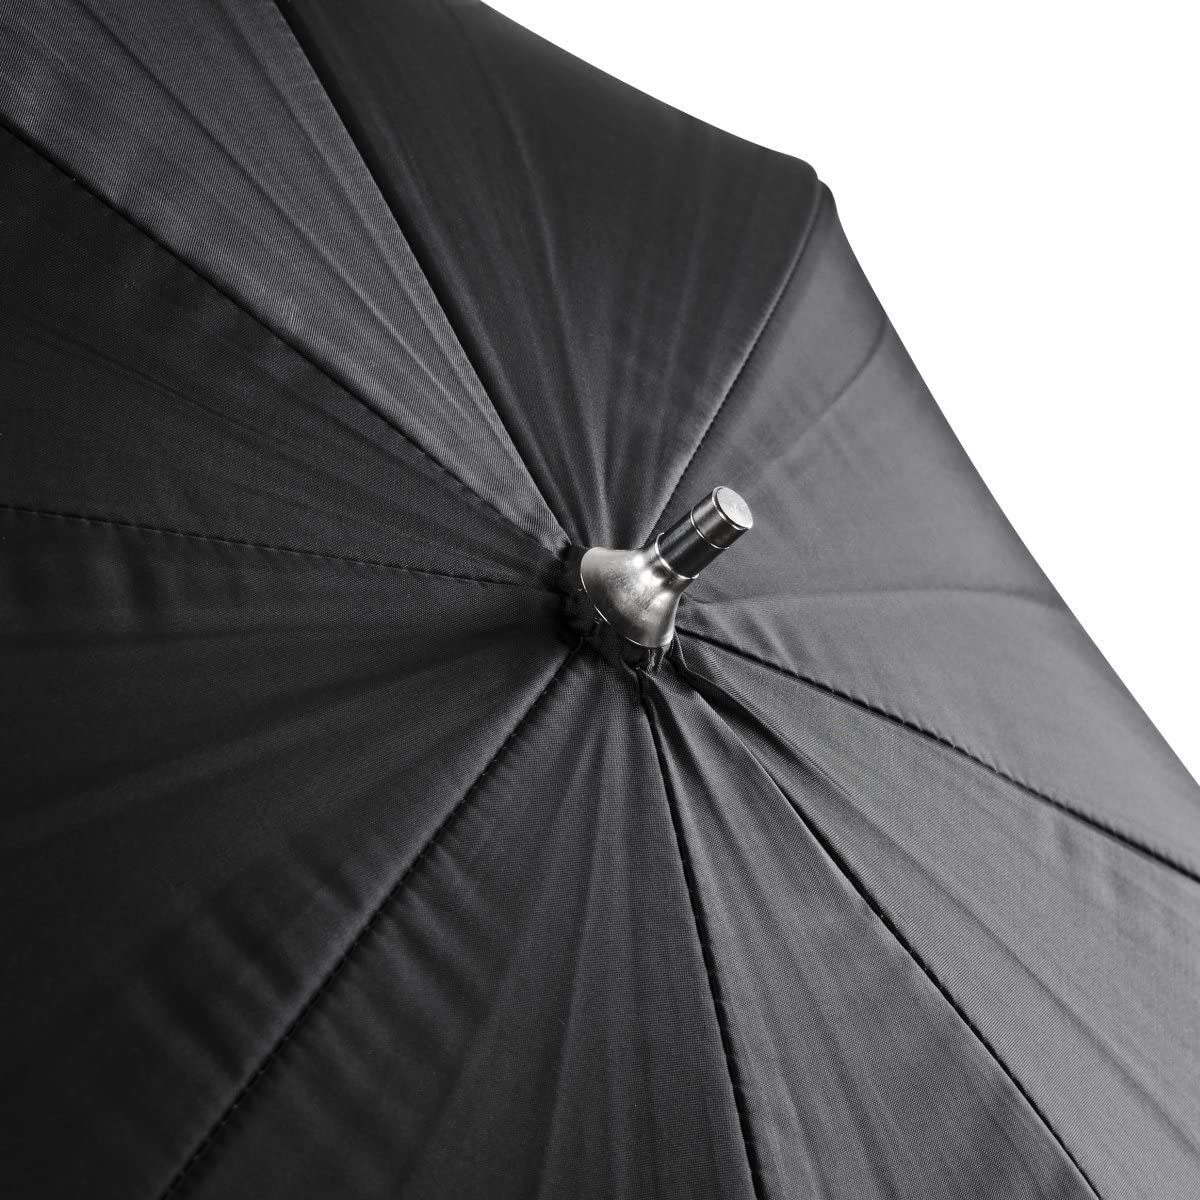 Walimex Reflex 109cm 2 Layer Umbrella Black//Gold